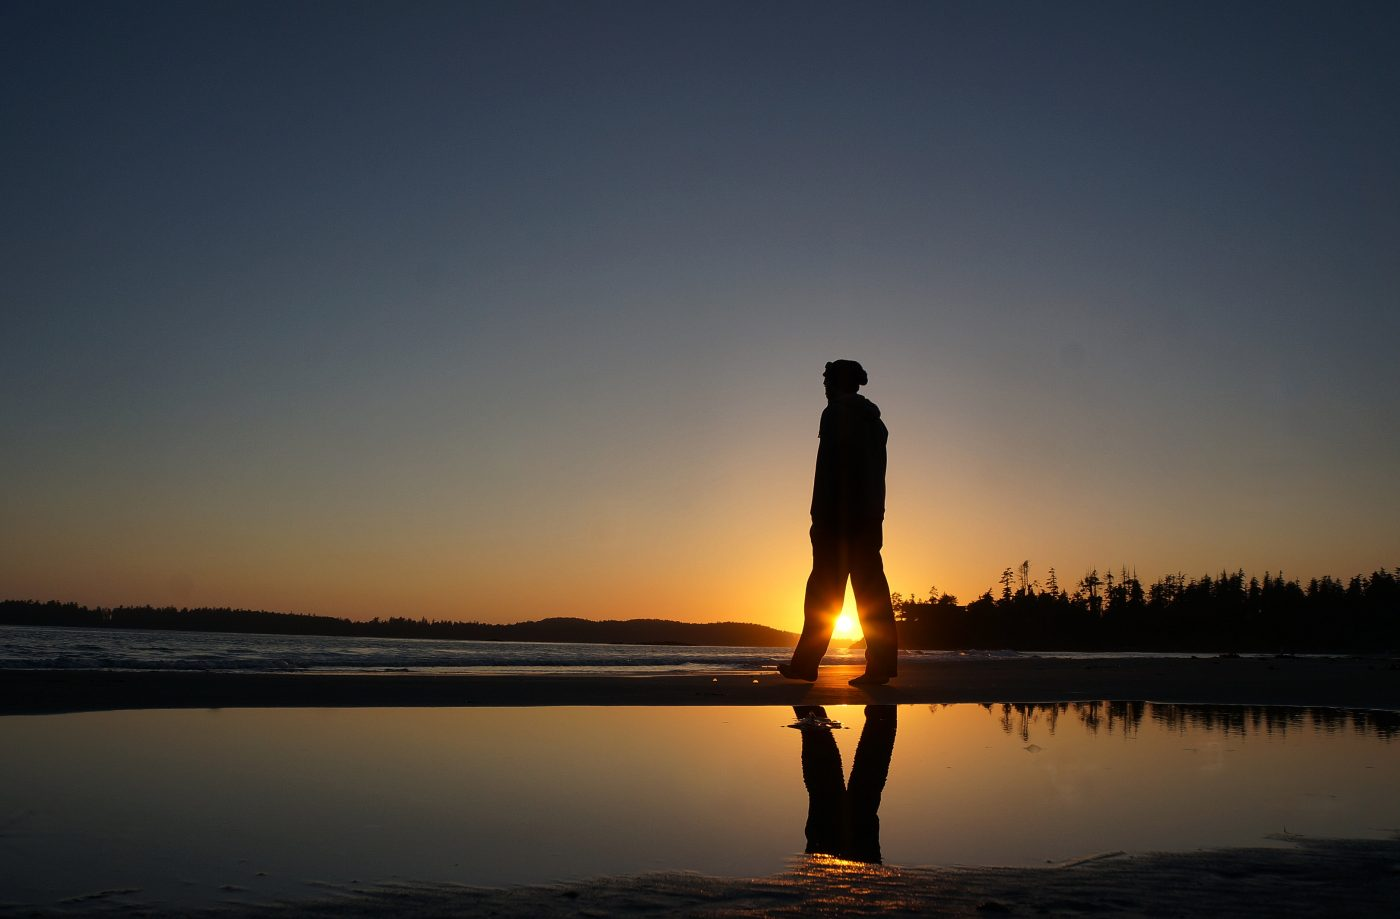 places to watch the sunset: Sunset Strolls In Tofino